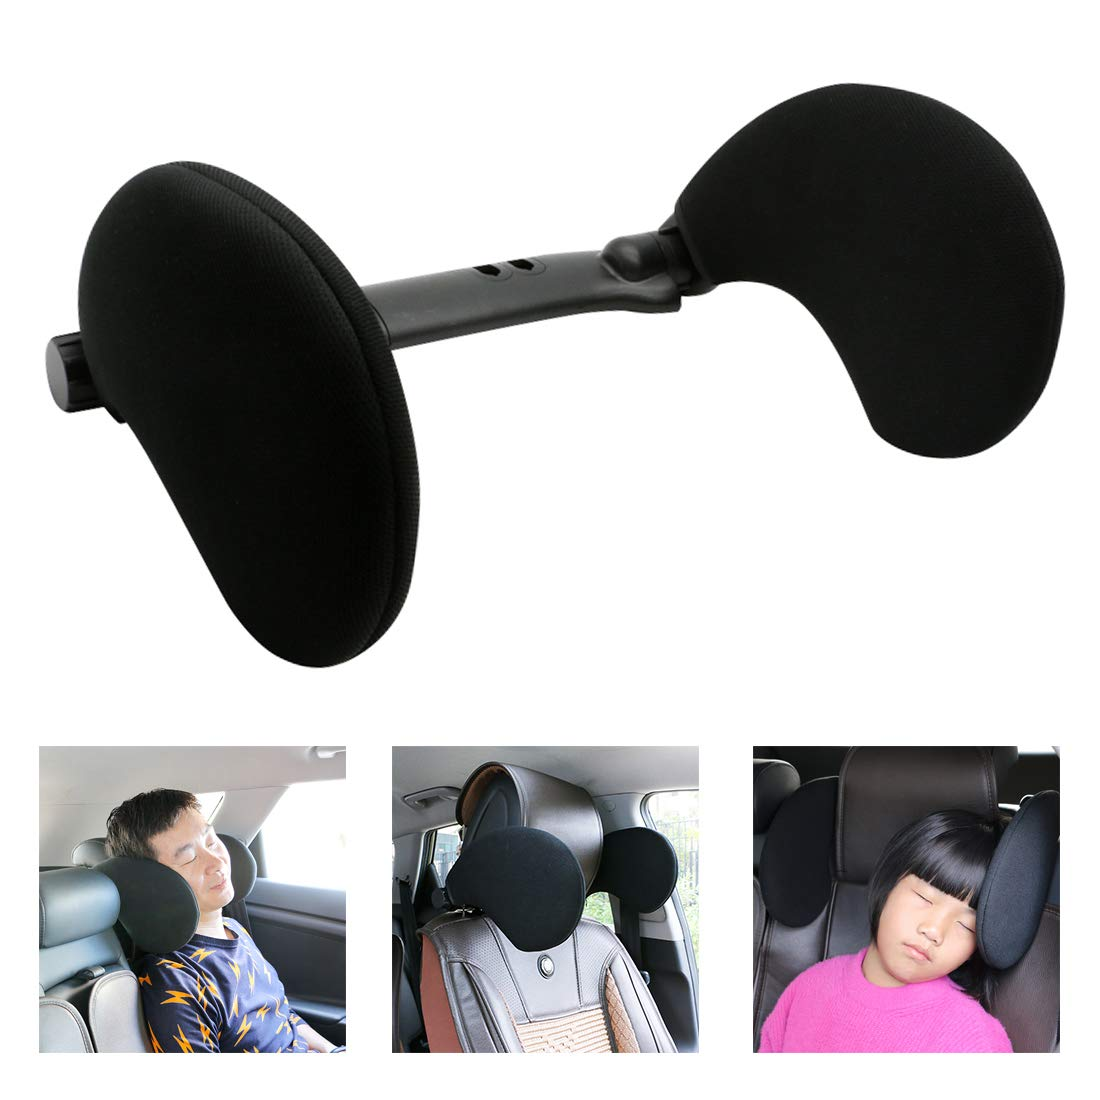 YOLOKE Adjustable Car Headrest Pillow, Car Neck Pillow for Travel Sleeping, Detachable Head Neck Support Cushion Car Pillow for Kids Adults (Black) by YOLOKE